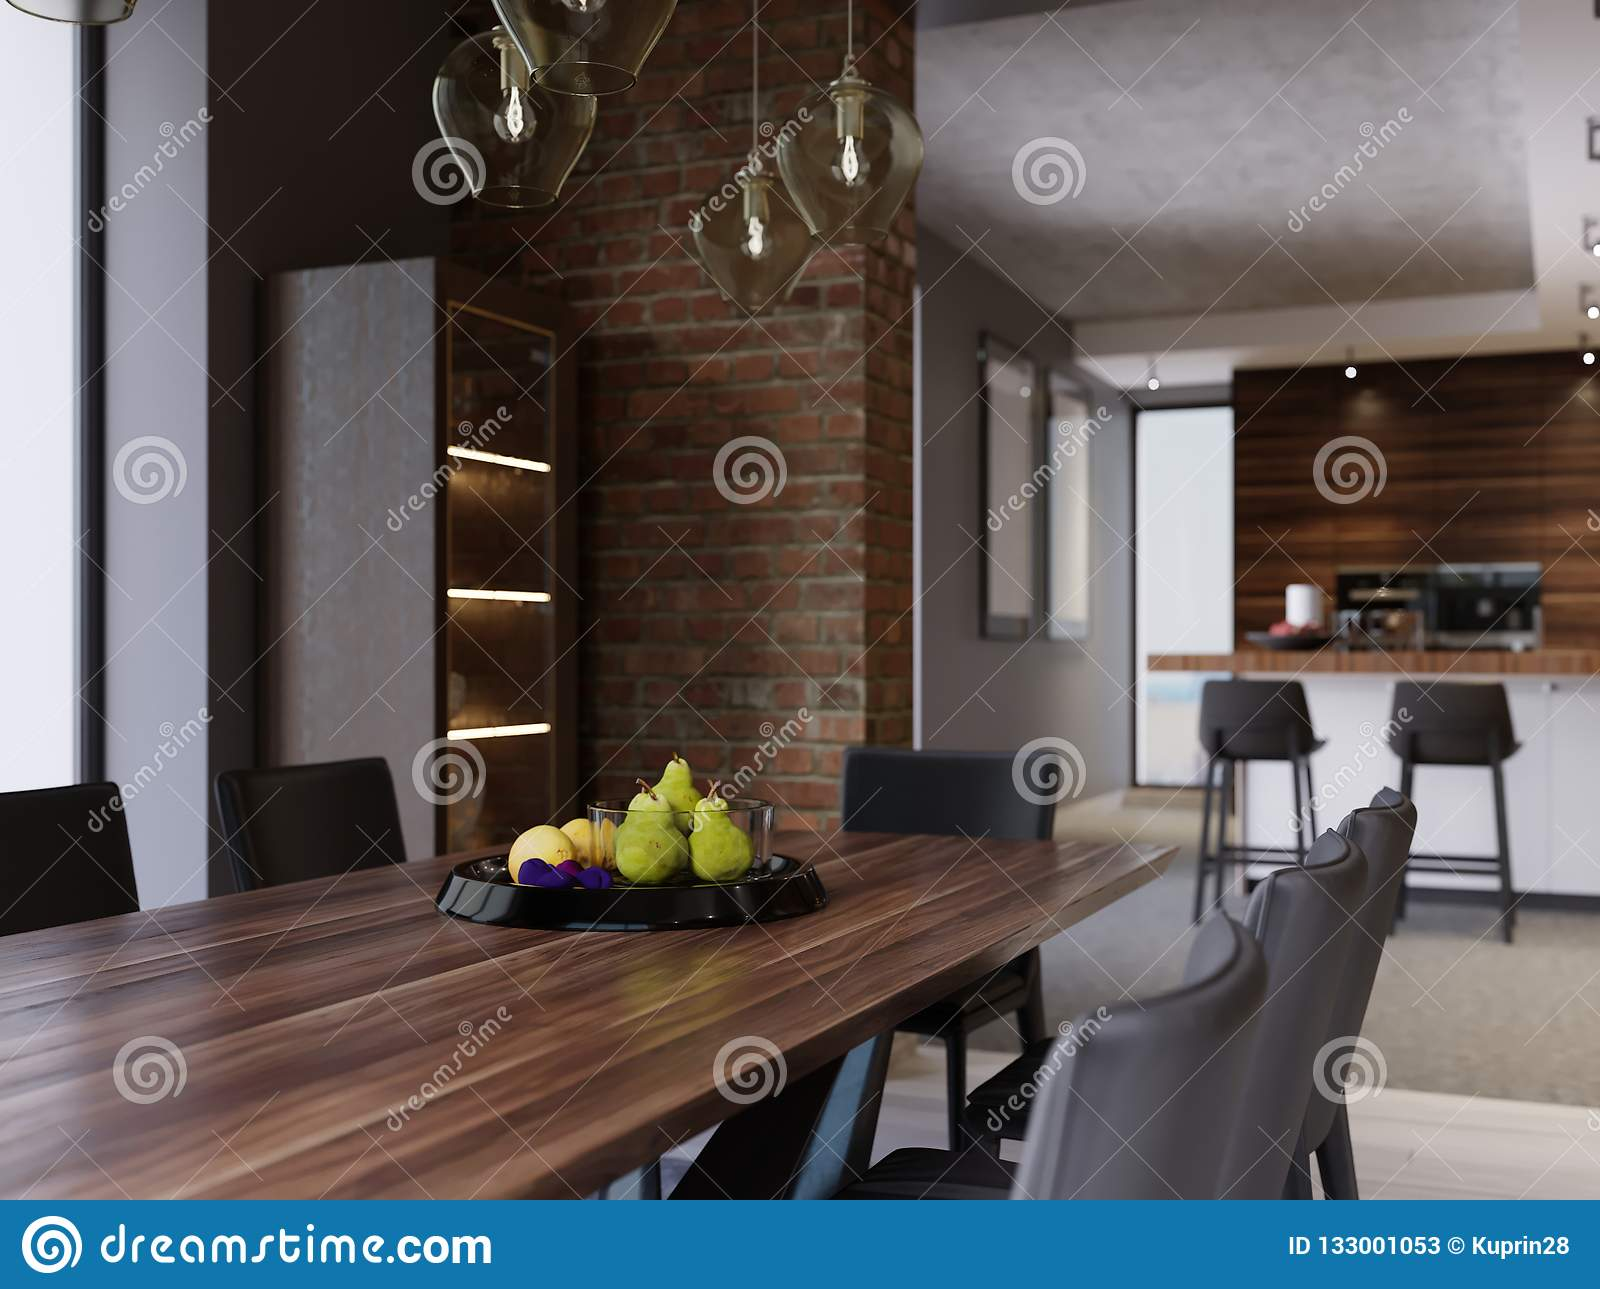 Dining Table With Decor Black Fruit Plate Dining Room In Modern Style In Loft Design Stock Illustration Illustration Of Decor Black 133001053